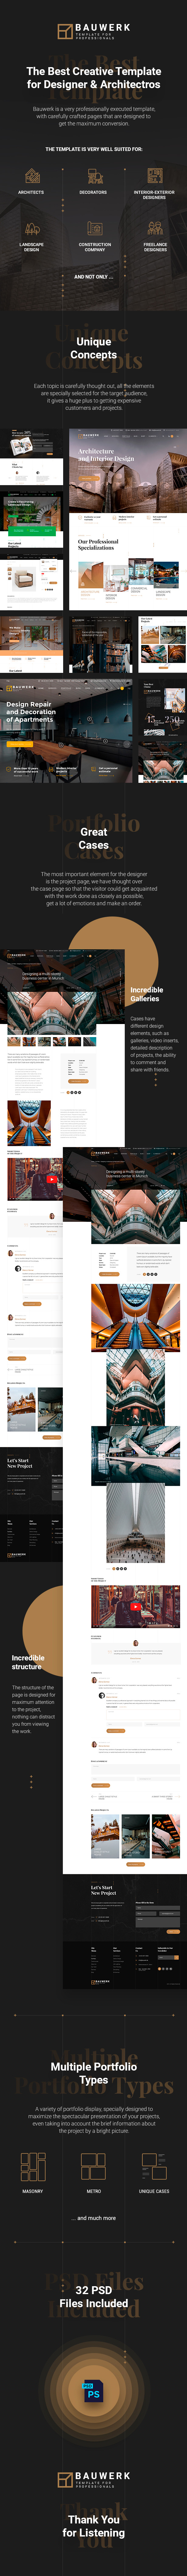 Bauwerk | Interior Design & Architecture PSD Template - 1